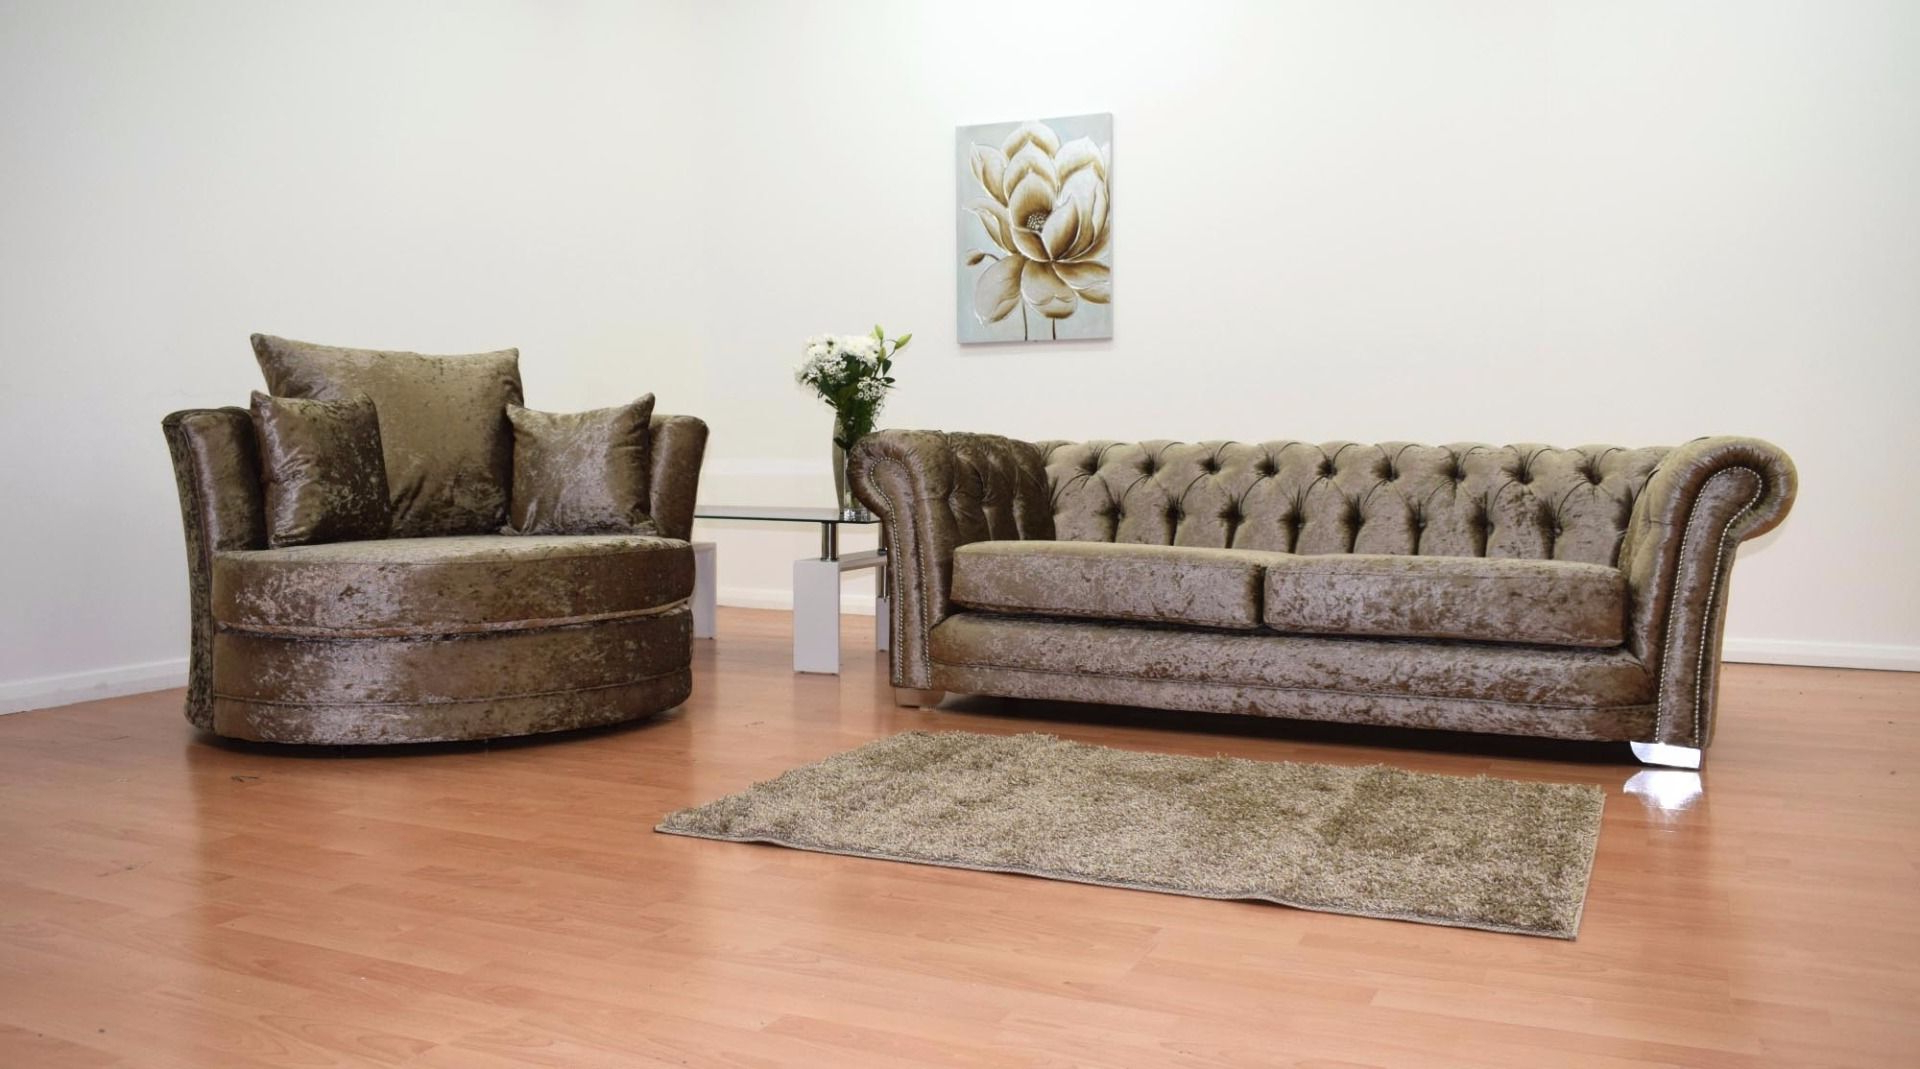 Chesterfield 3 Seater Sofa And Cuddle Chair – Truffle Inside Trendy 3 Seater Sofa And Cuddle Chairs (View 6 of 20)